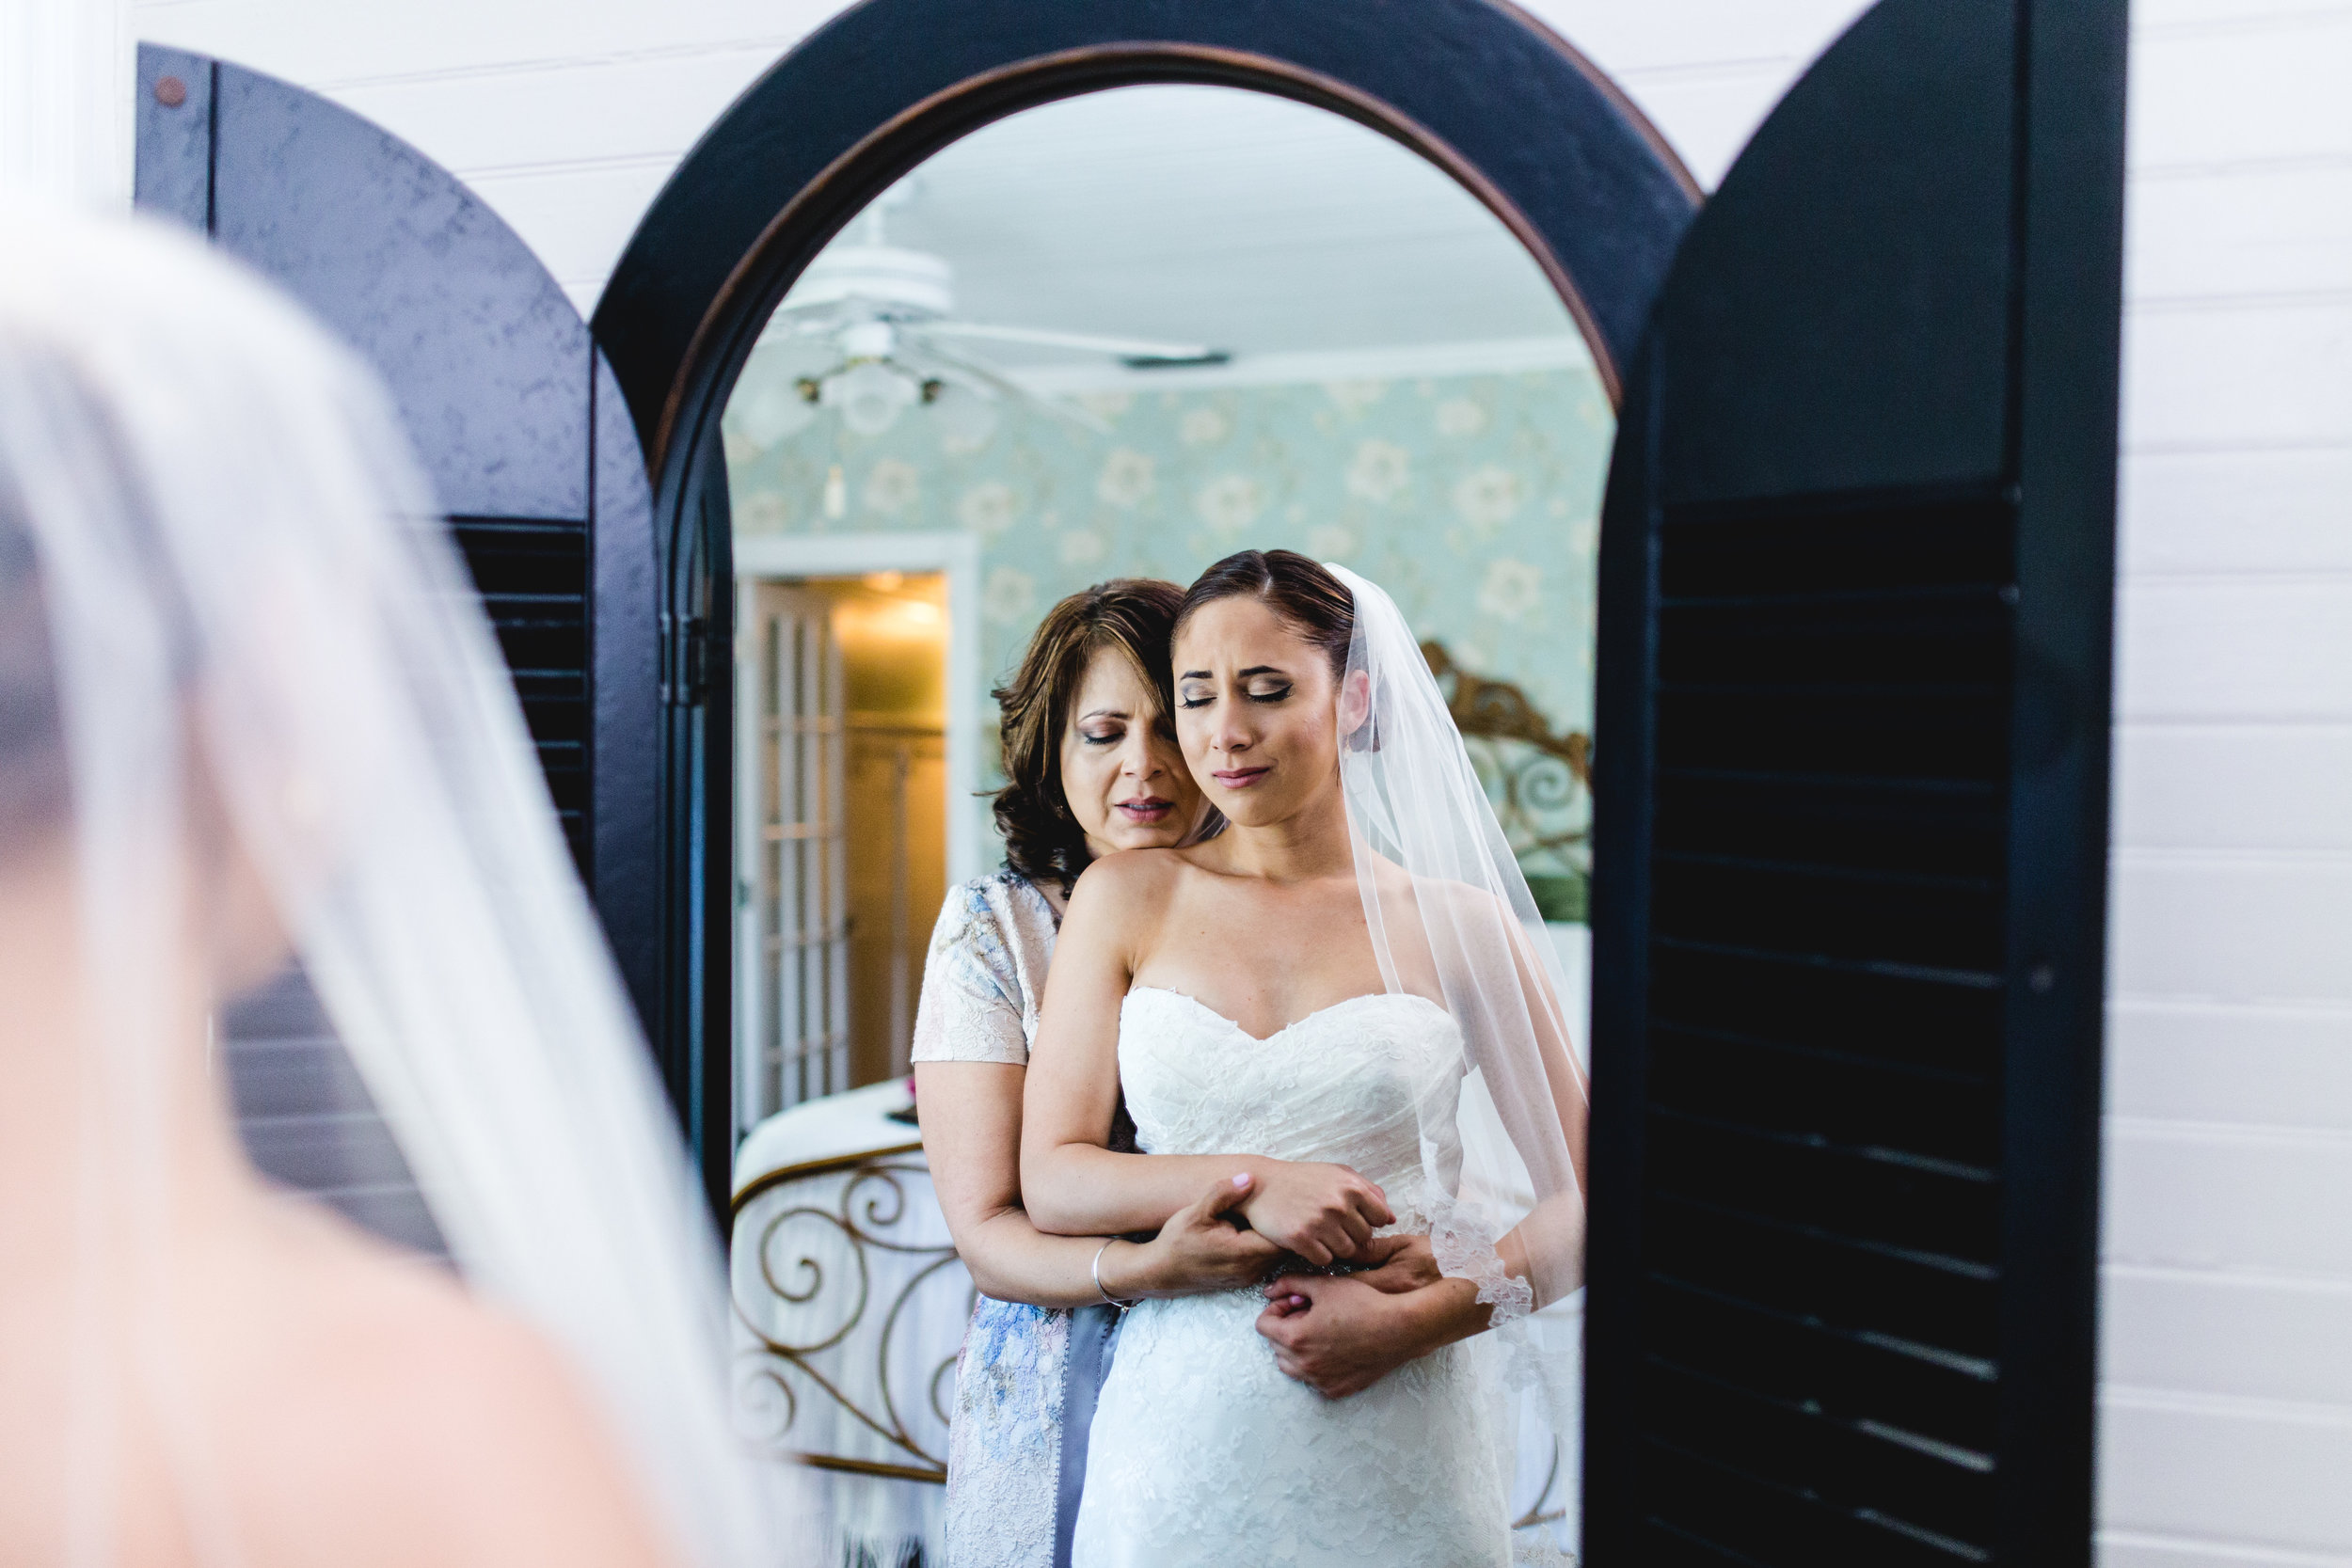 A wedding, engagement, love, newlywed image of of a bride embracing her mother-taken by Miami Wedding Photographer, Javier Edwards of El Roi Photo, in Miami, Florida.